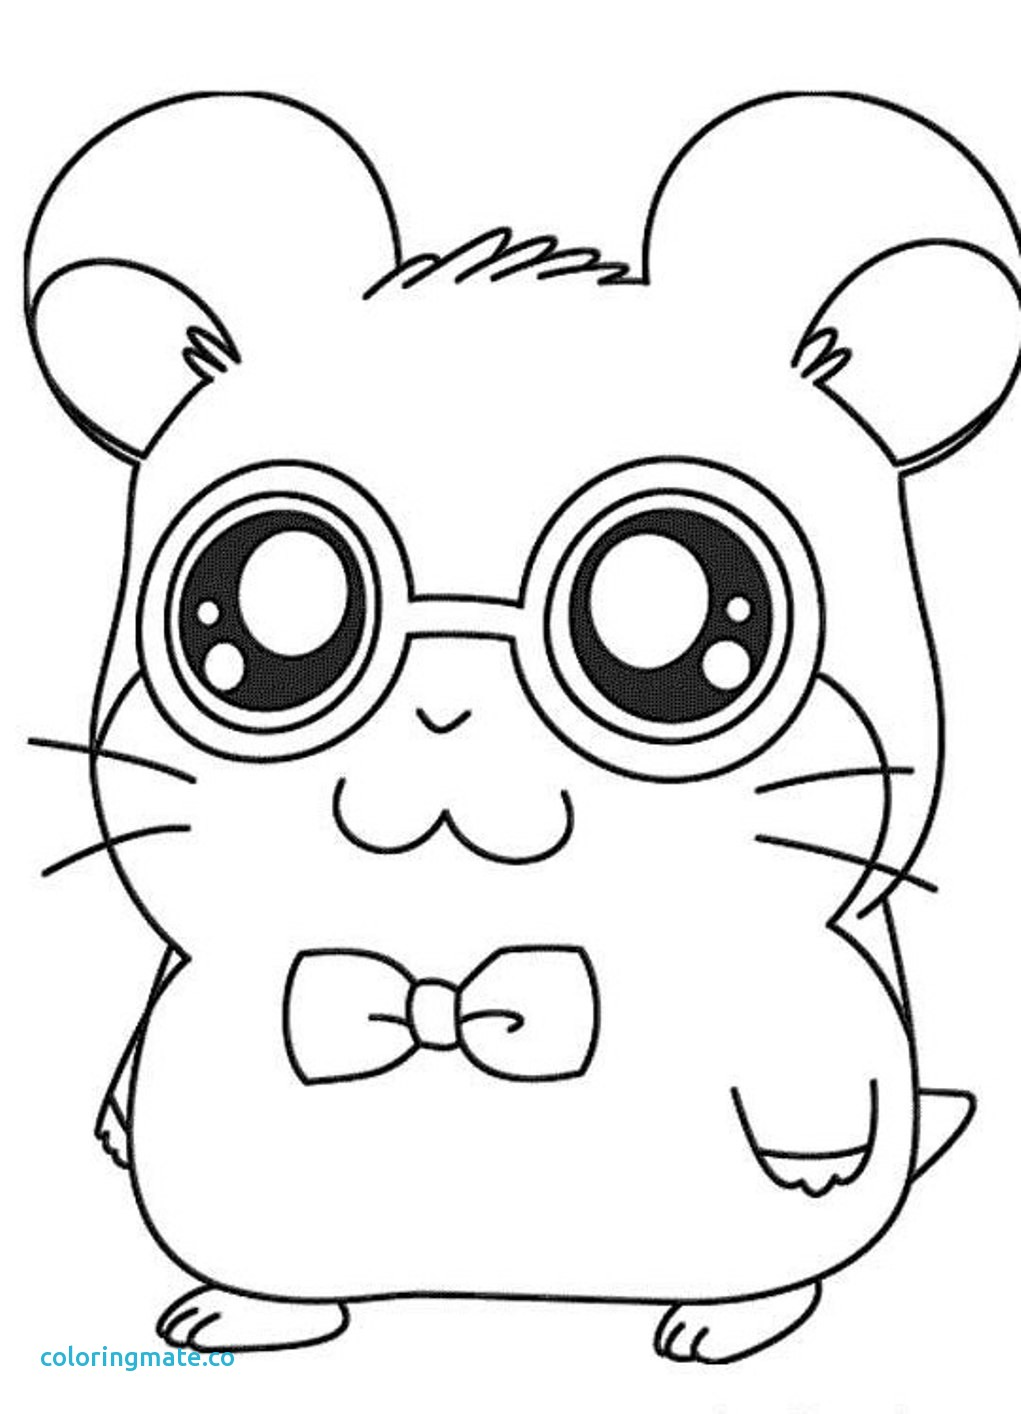 1021x1414 Adorable Coloring Pages Awesome Cute And Color